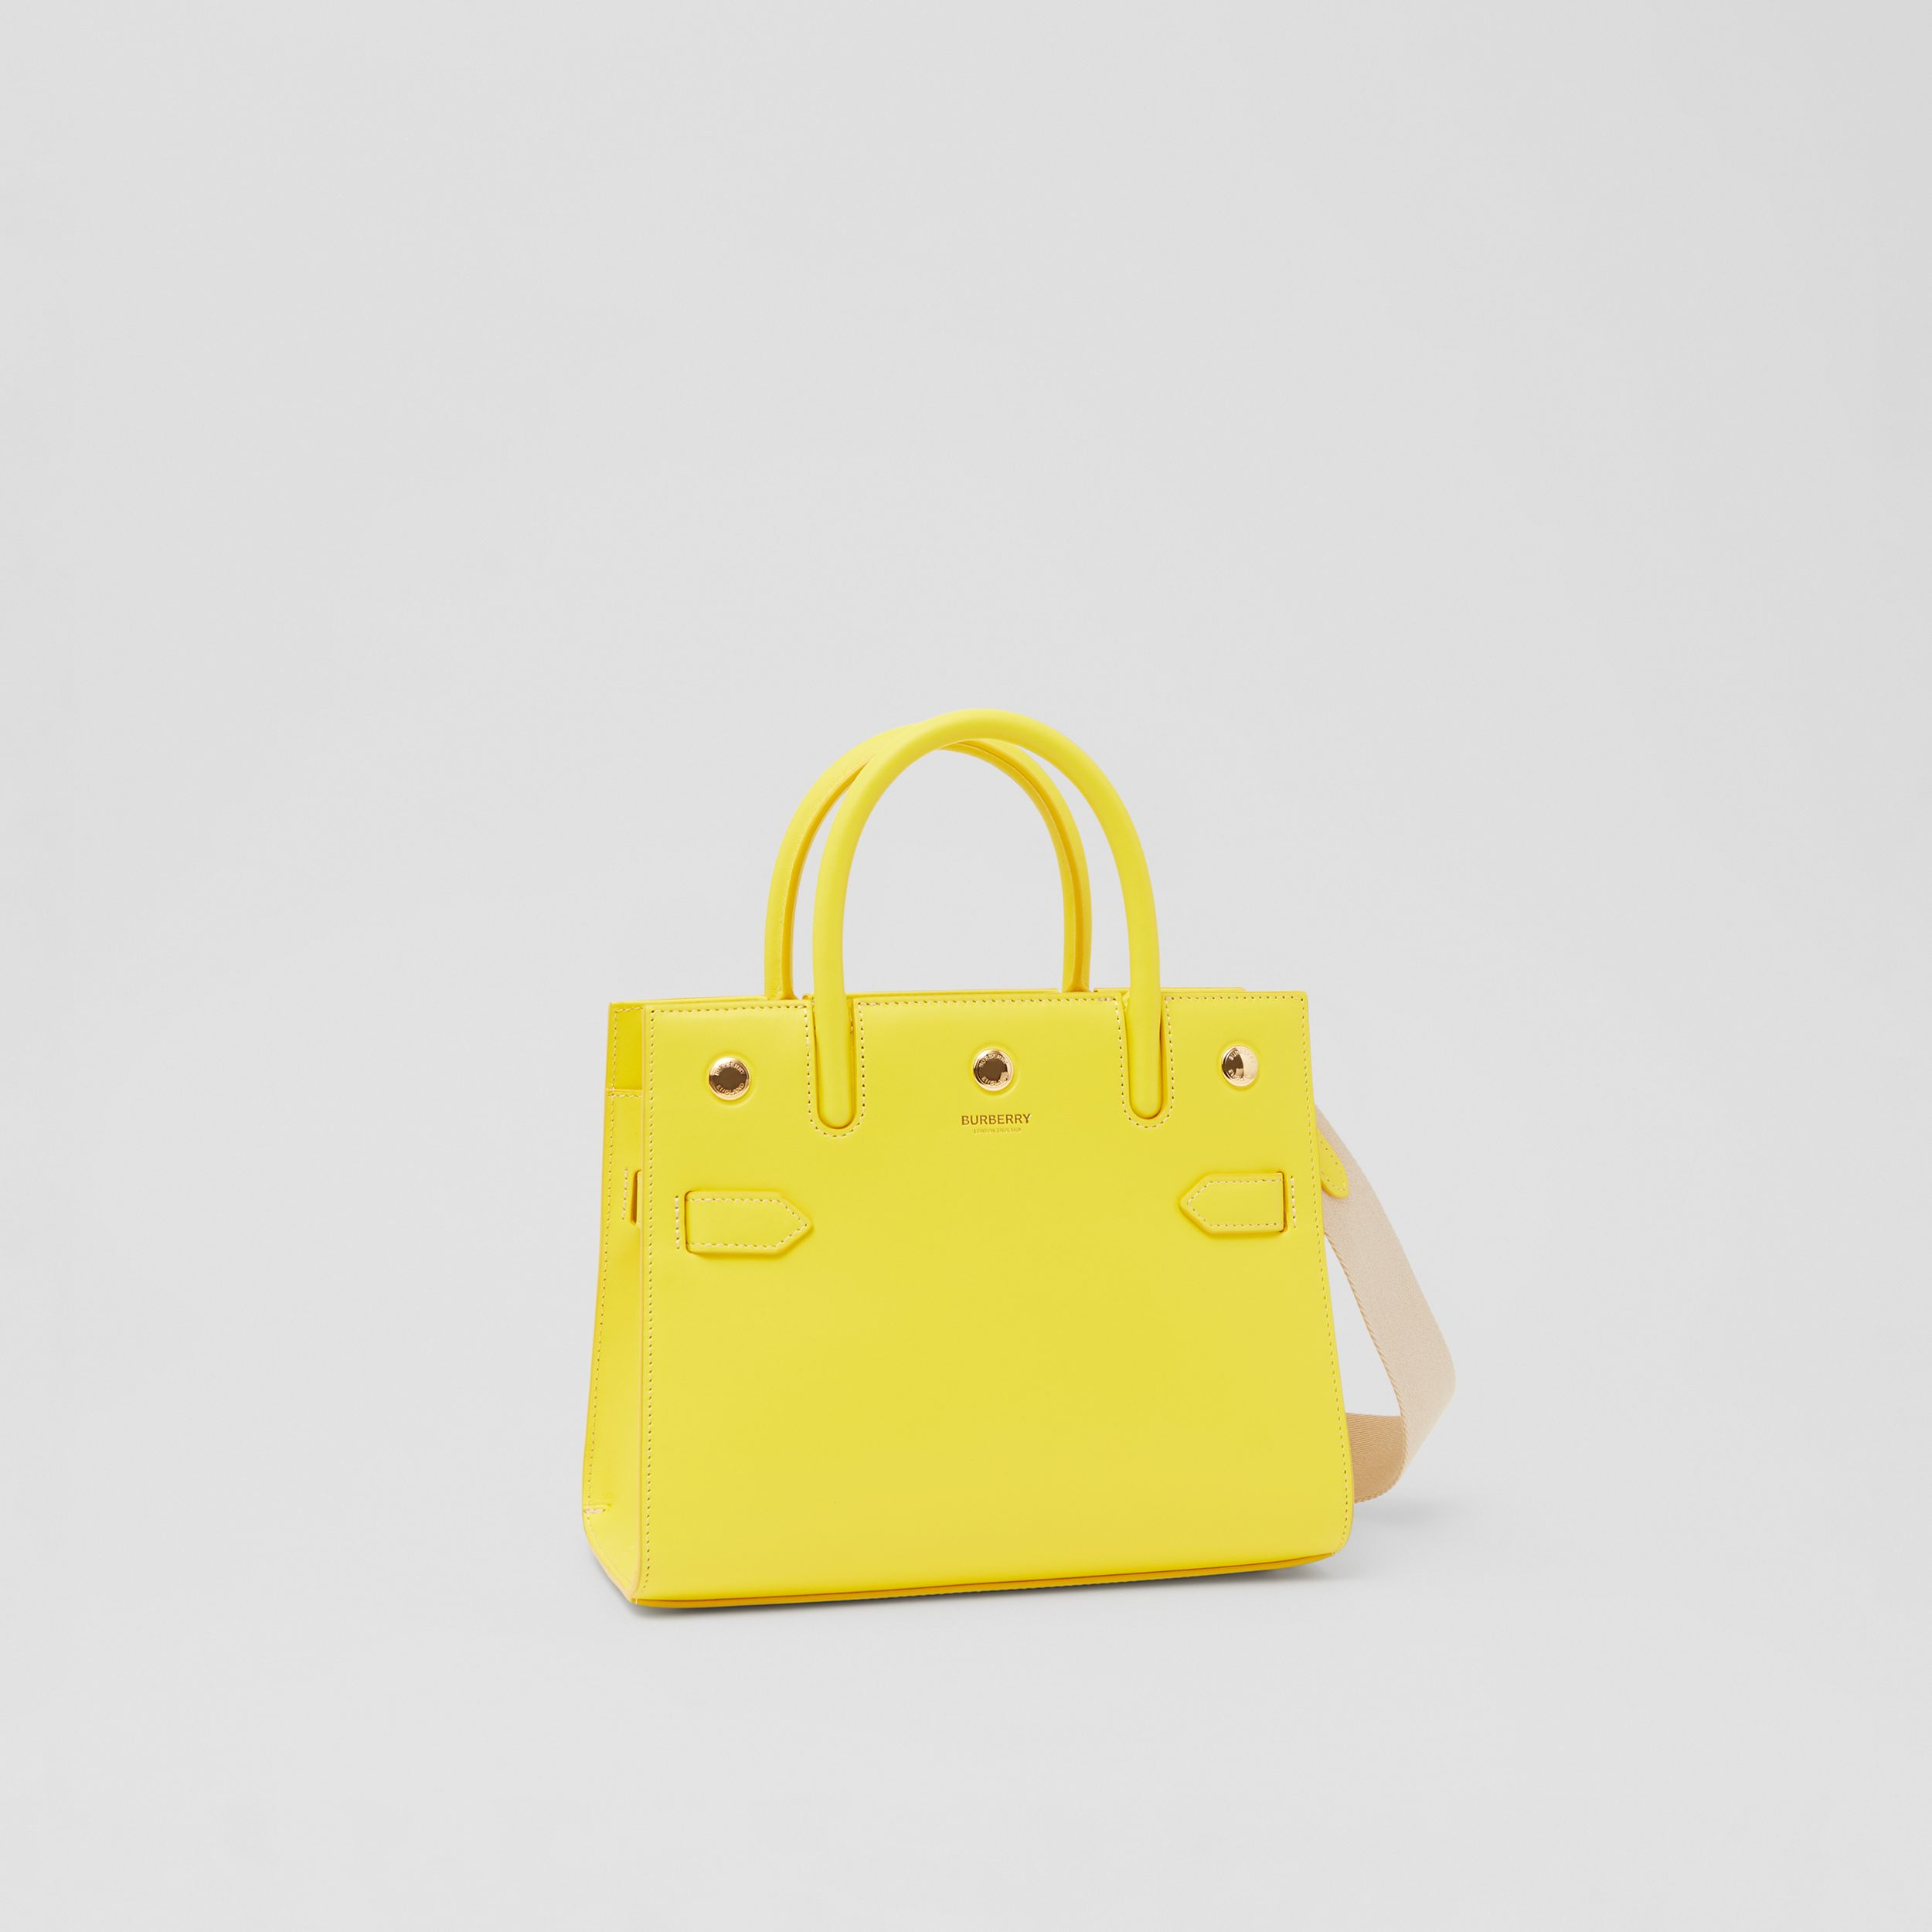 Mini Leather Two-handle Title Bag in Marigold Yellow - Women | Burberry - 4